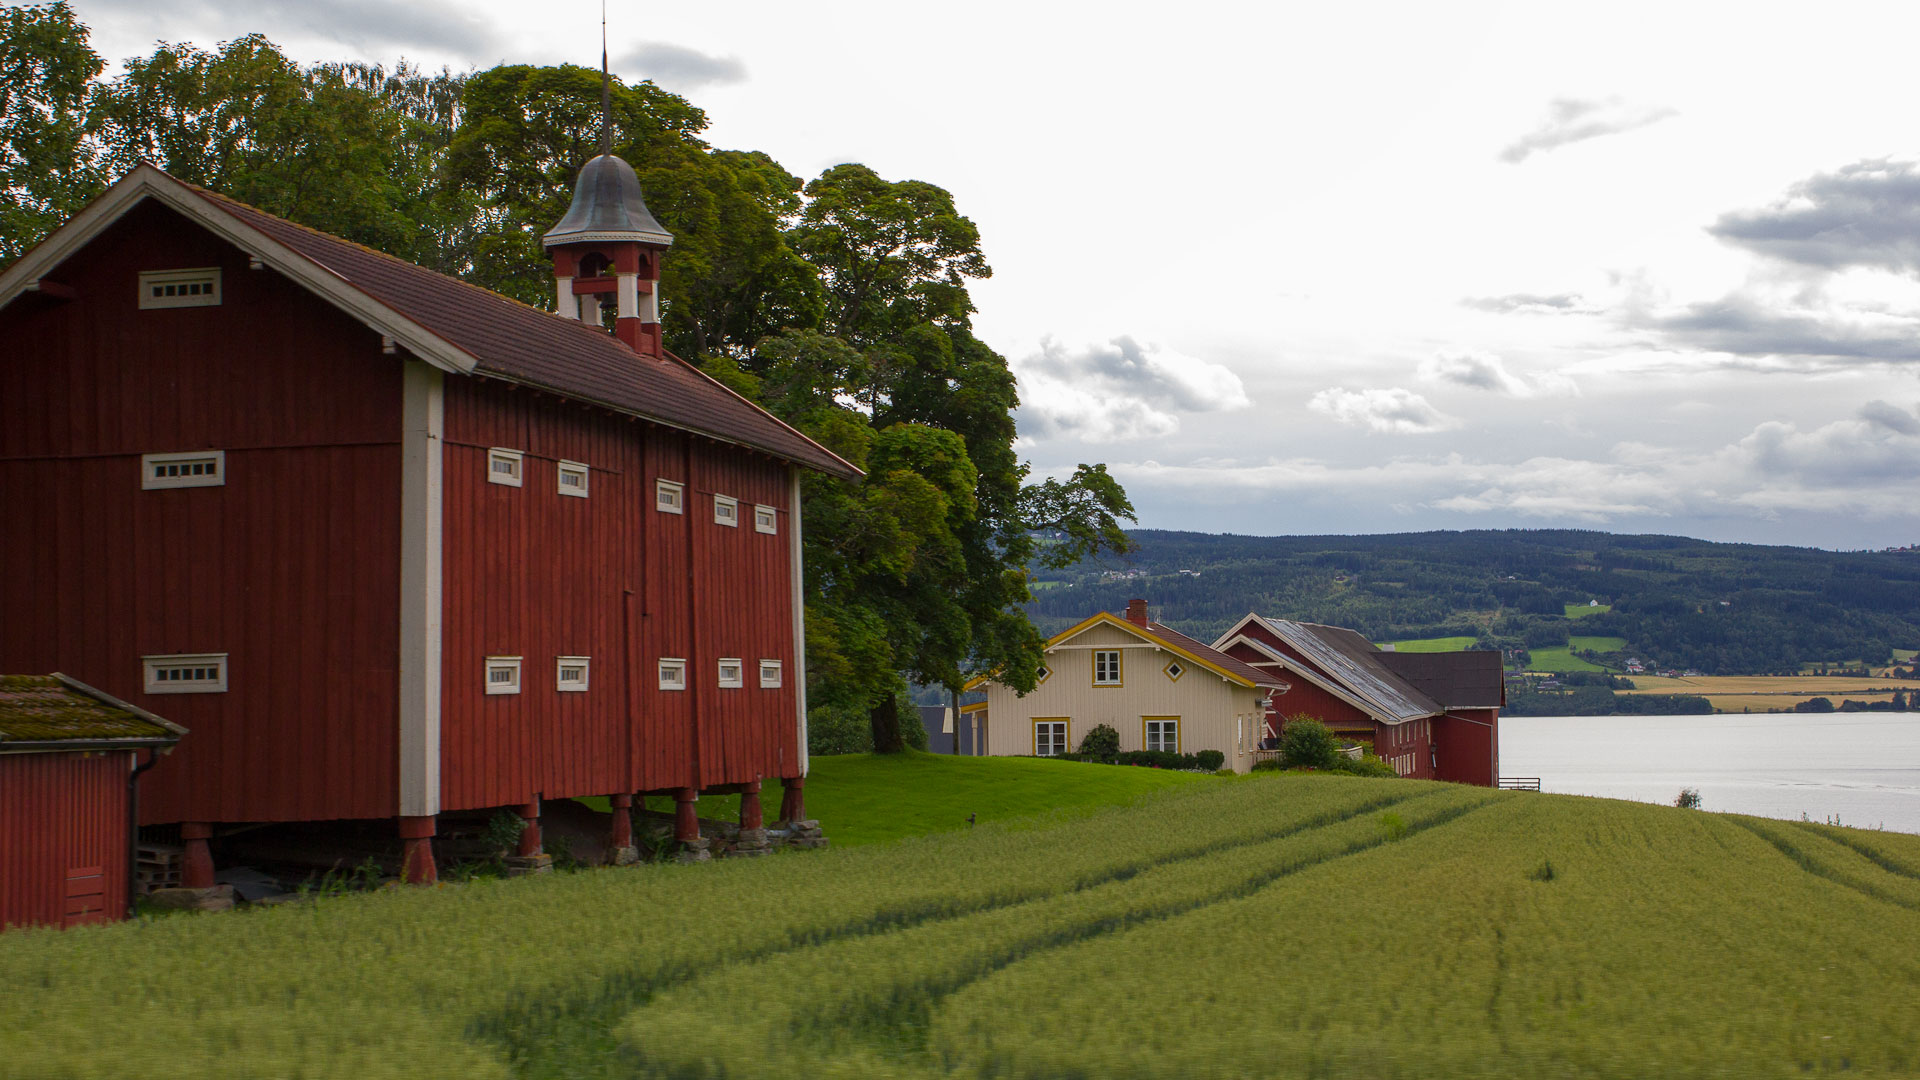 A farm in Norway